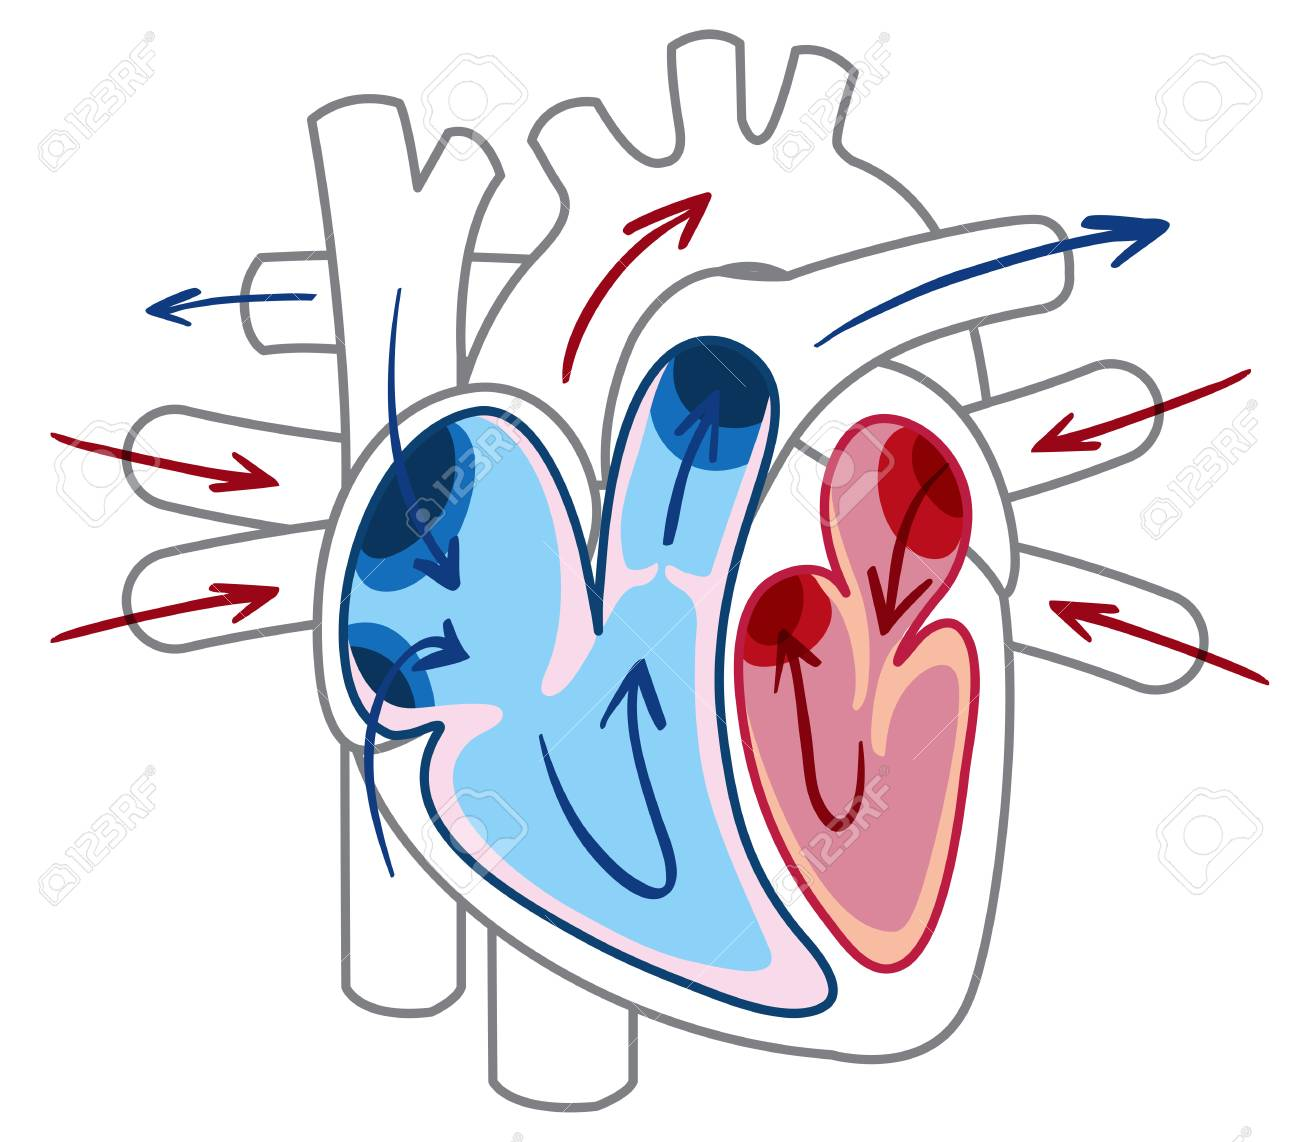 hight resolution of blood flow of the heart diagram illustration stock vector 103619619